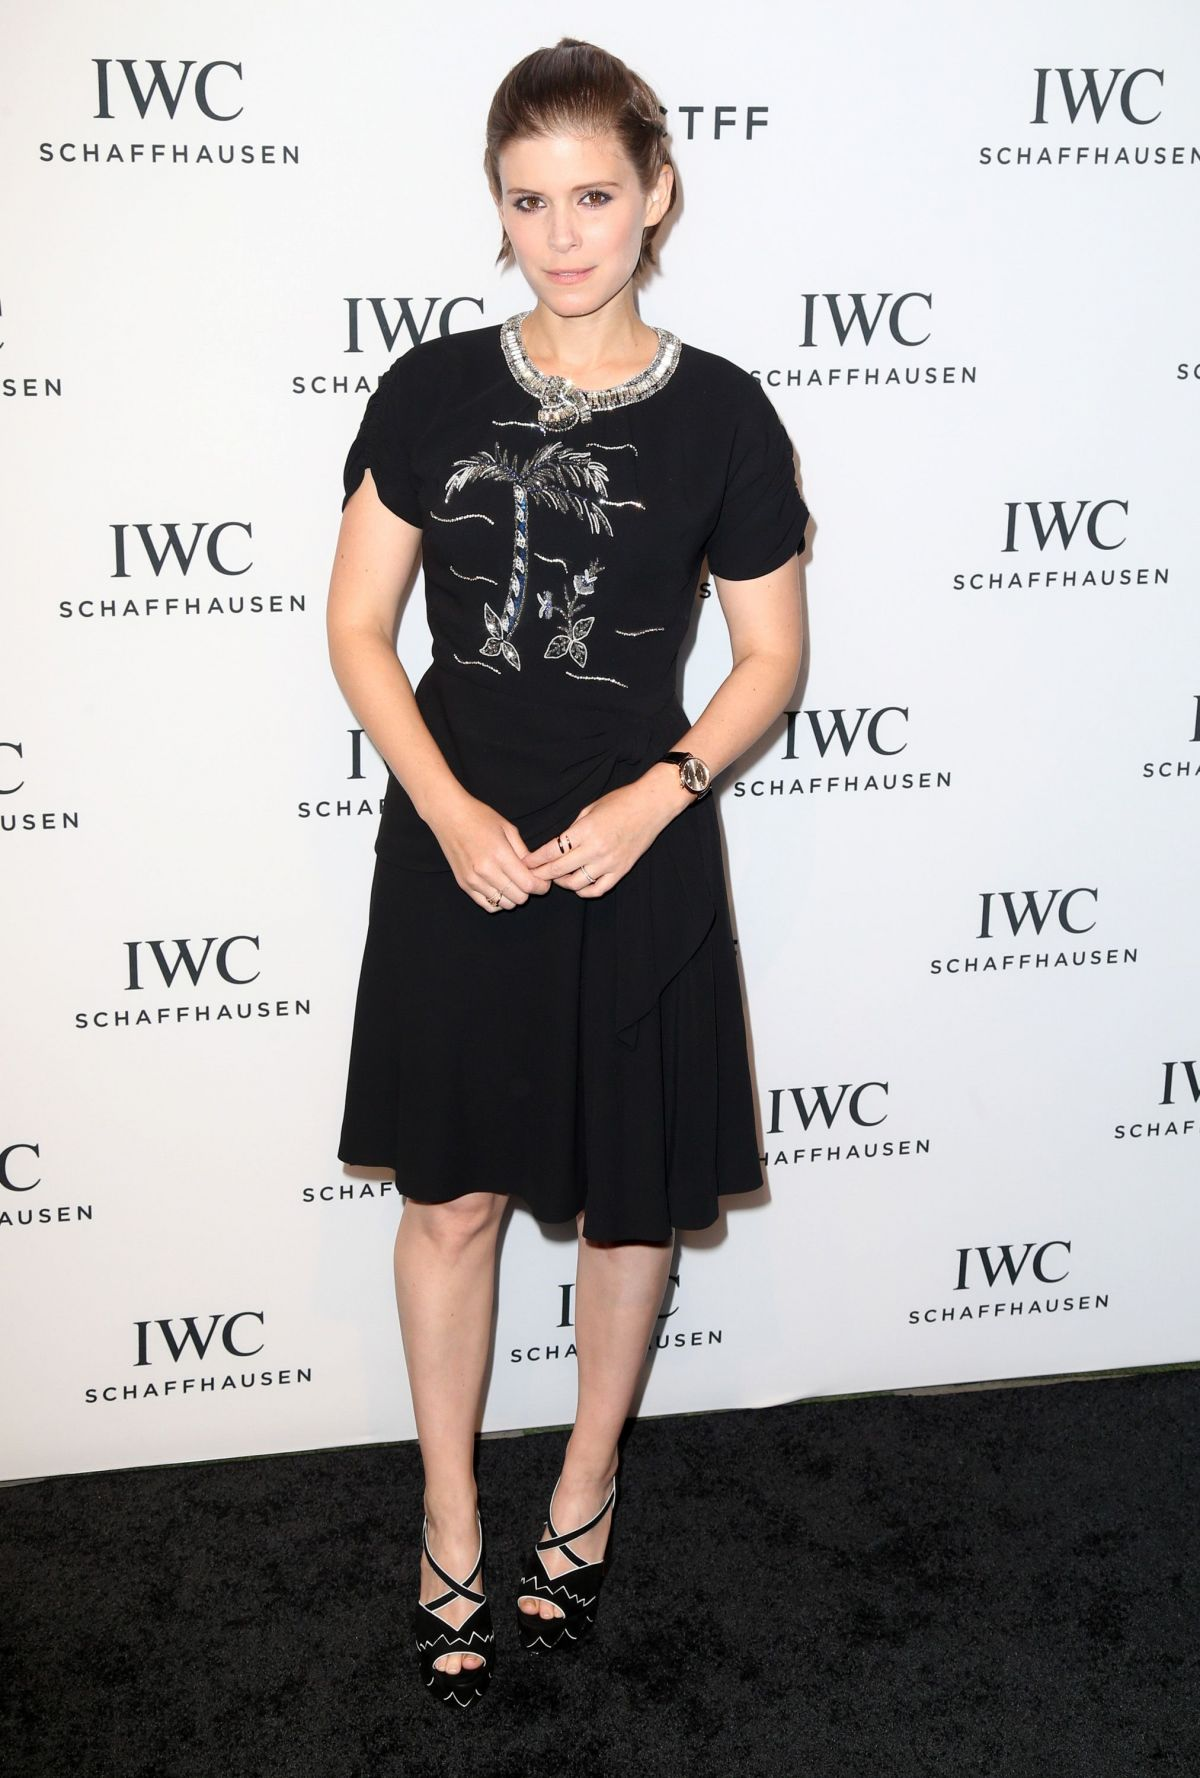 KATE MARA at IWC Schaffhausen for the Love of Cinema Dinner at Tribeca Film Fest in New York 04/14/2016